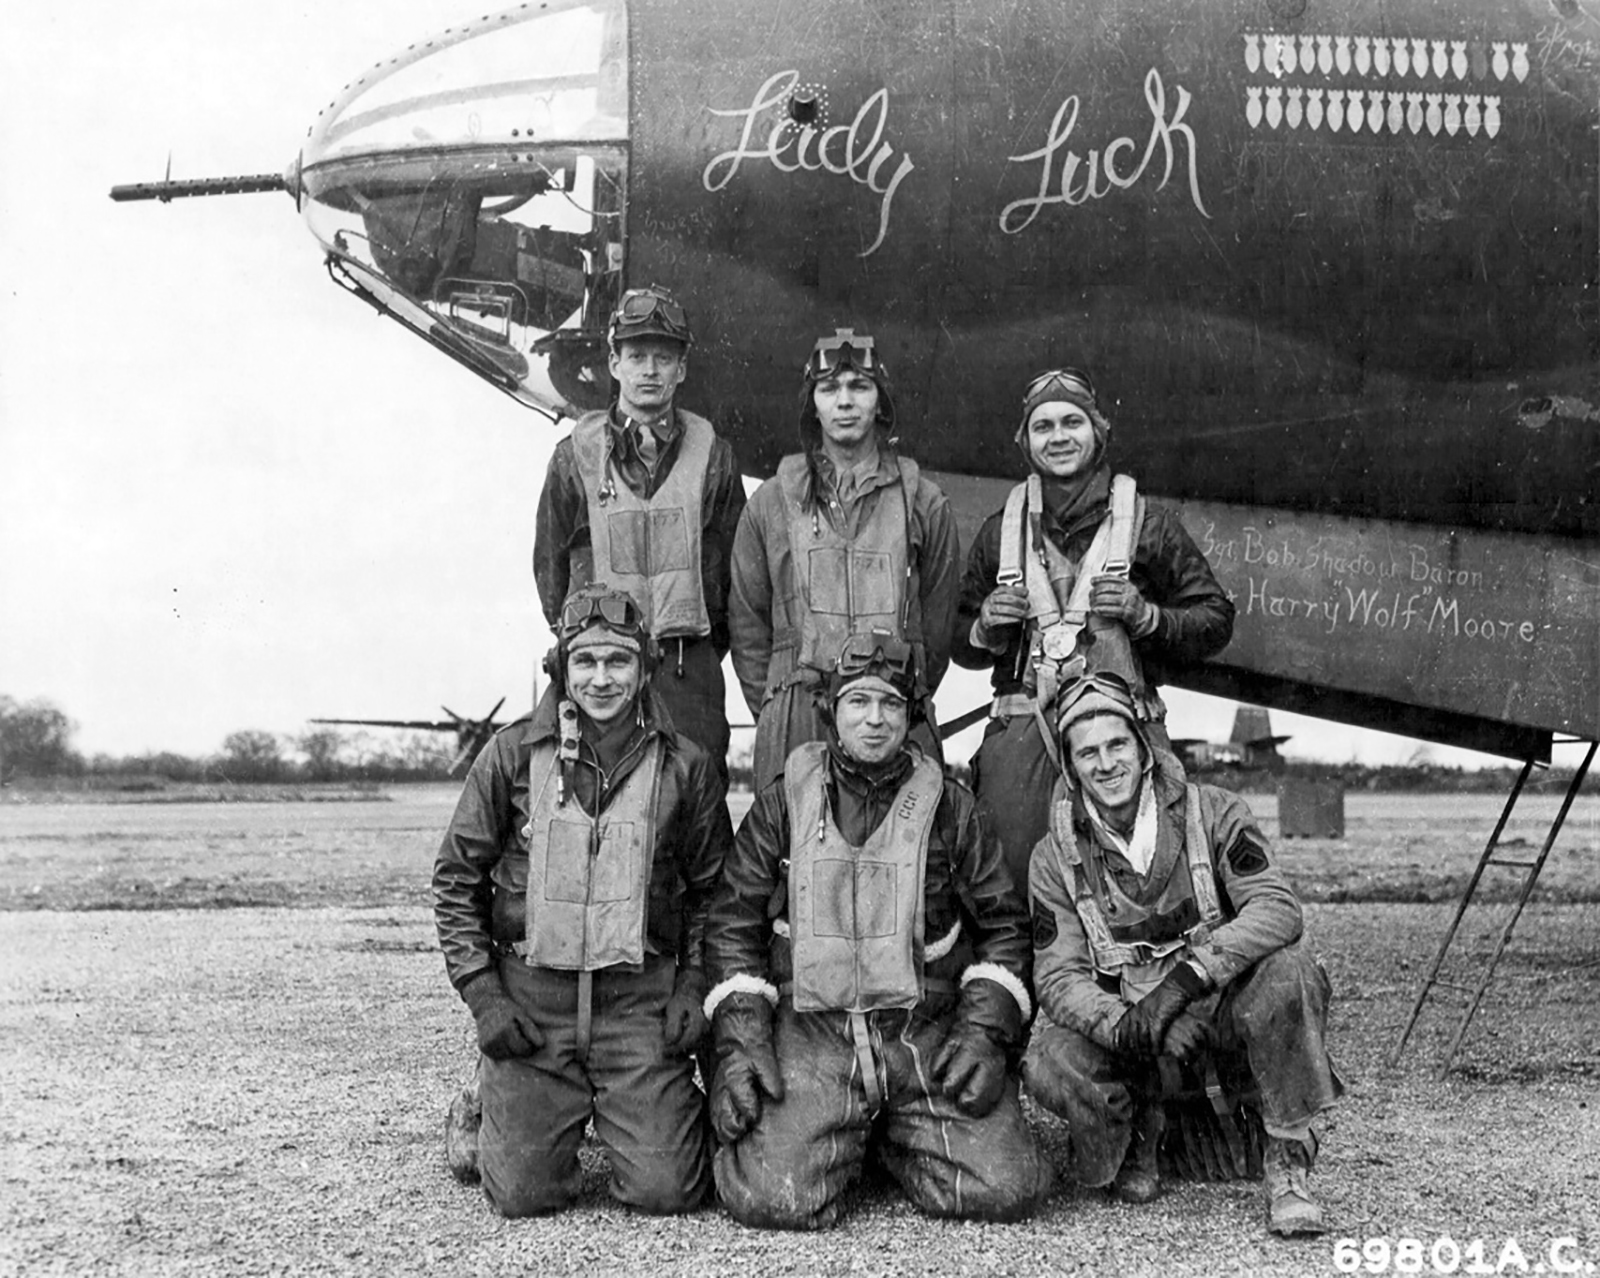 USAAF 41 34947 B 26C Marauder 386BG554BS RUK Lady Luck with crew at their base in Boxted Essex England 12 Sep 1943 044